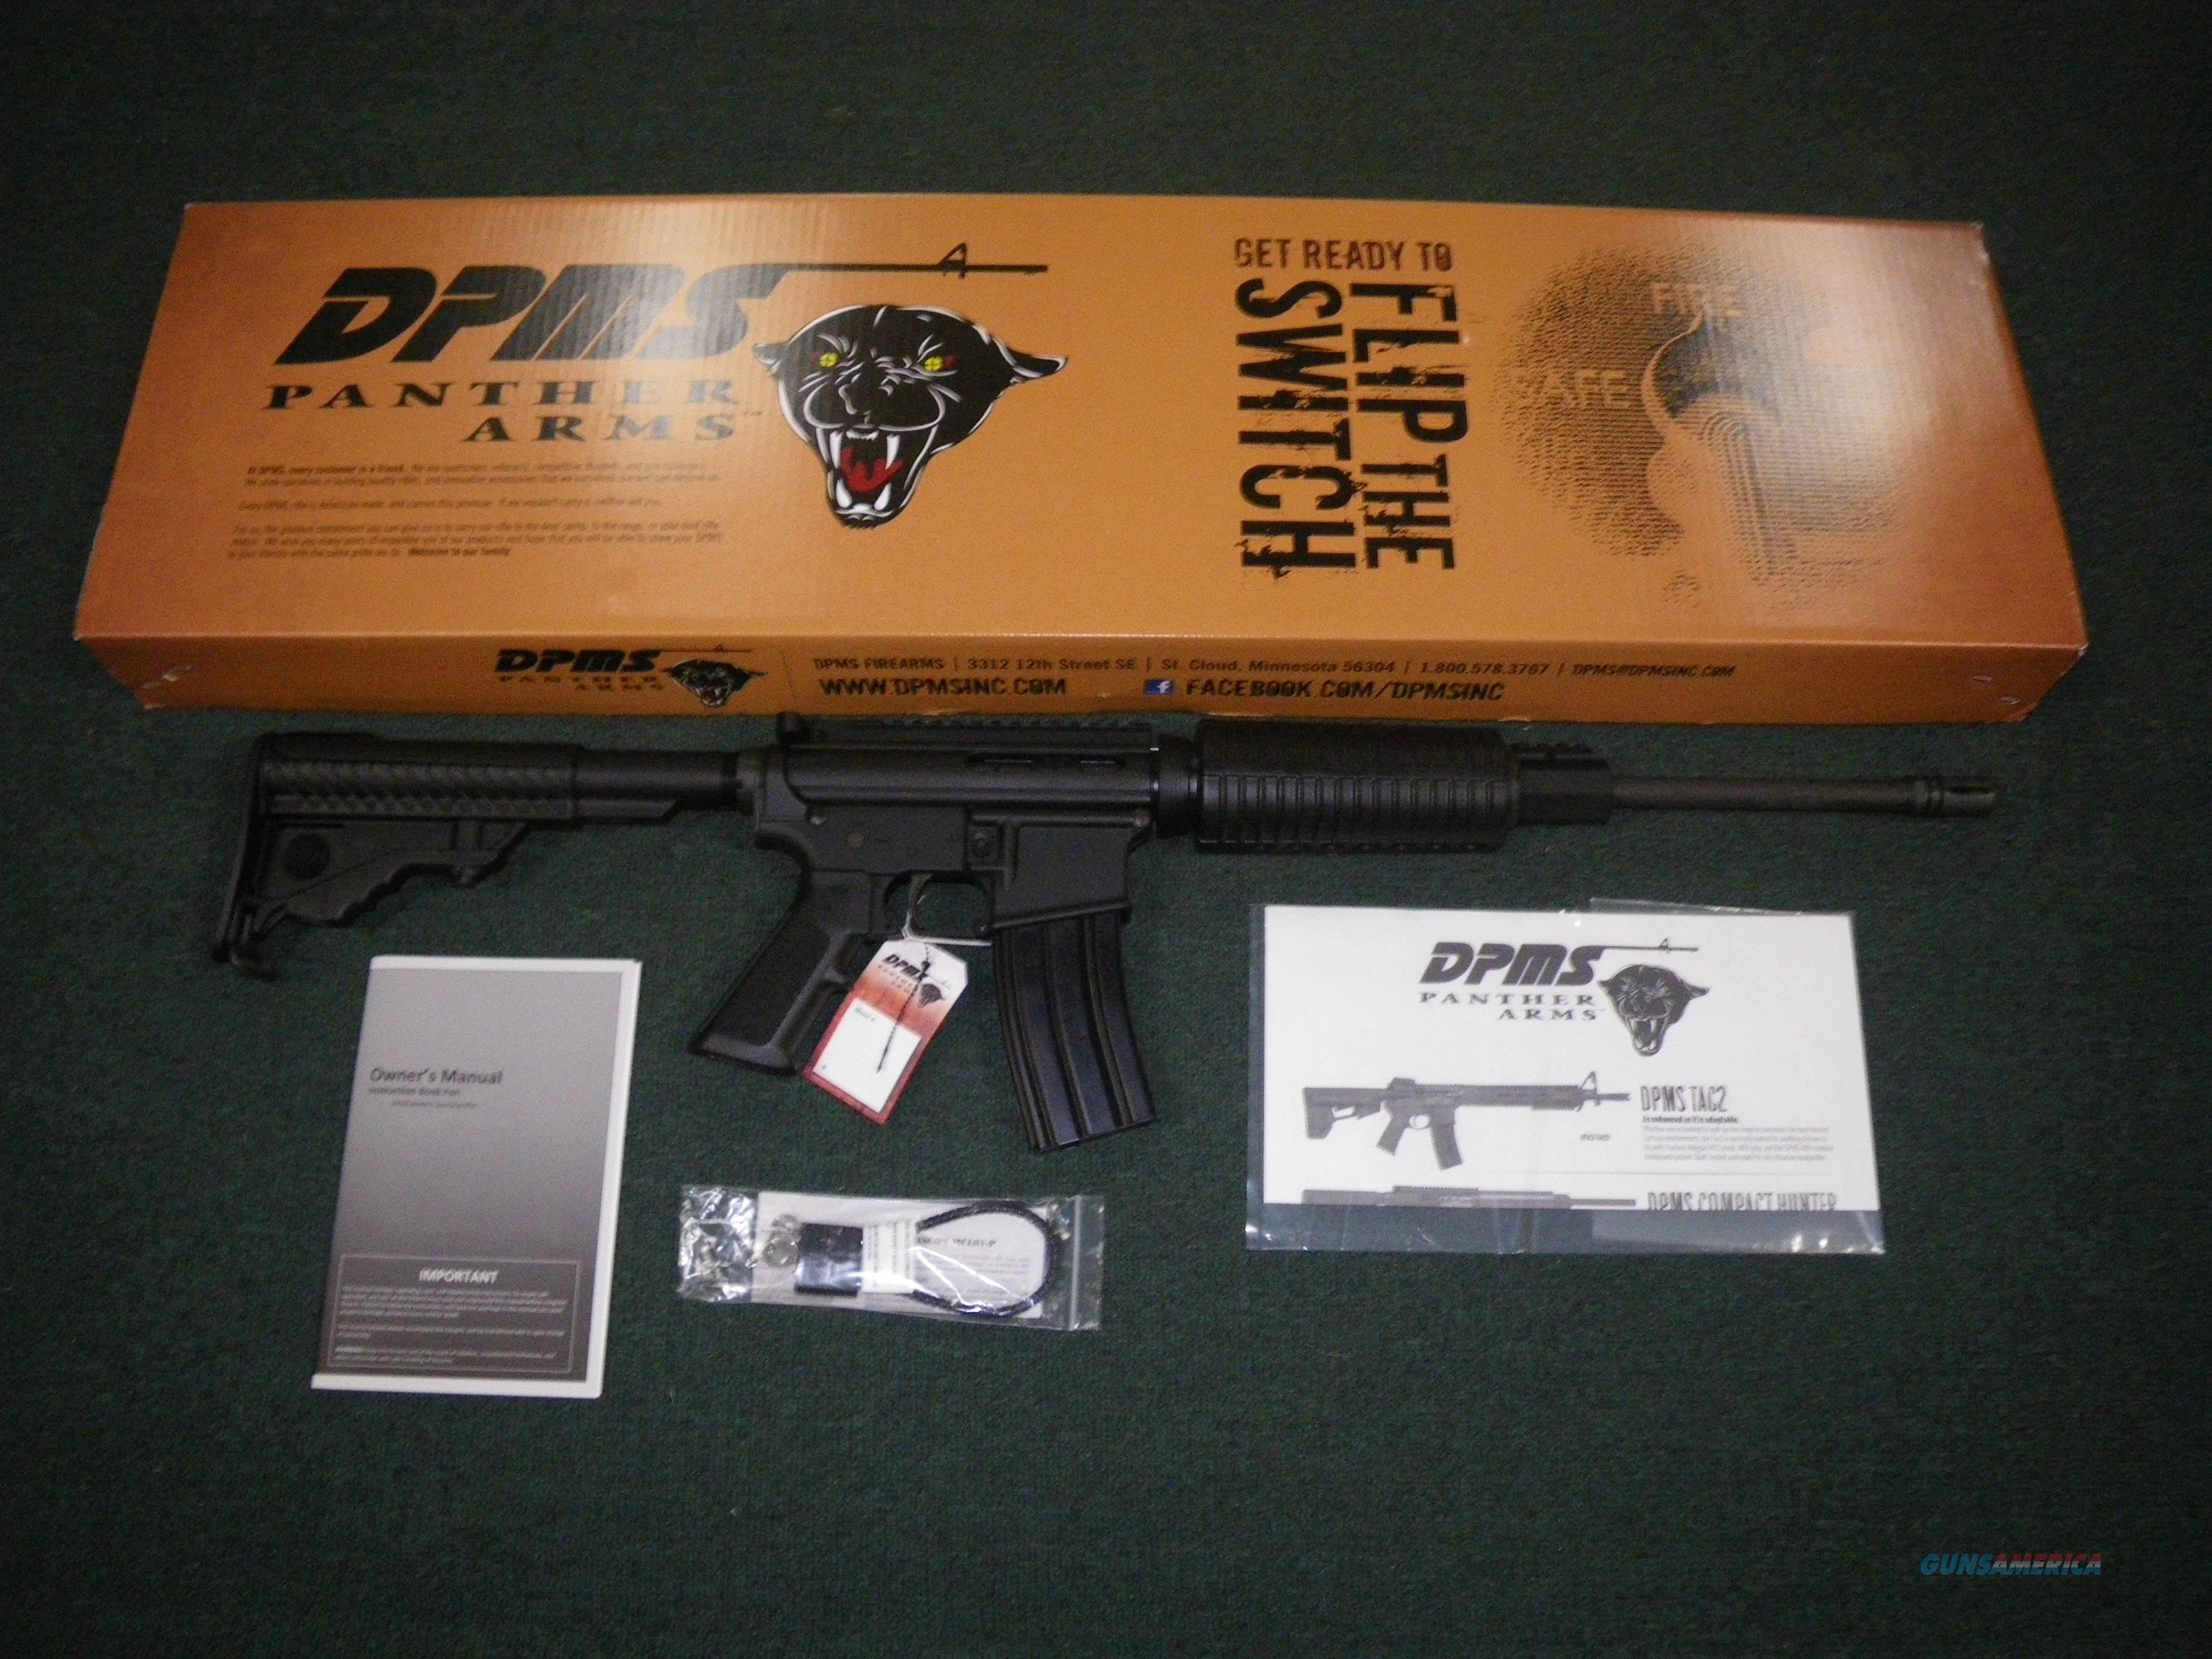 "DPMS Sportical 223 Rem 5.56 Nato 16"" RFLP-WCP New  Guns > Rifles > DPMS - Panther Arms > Complete Rifle"